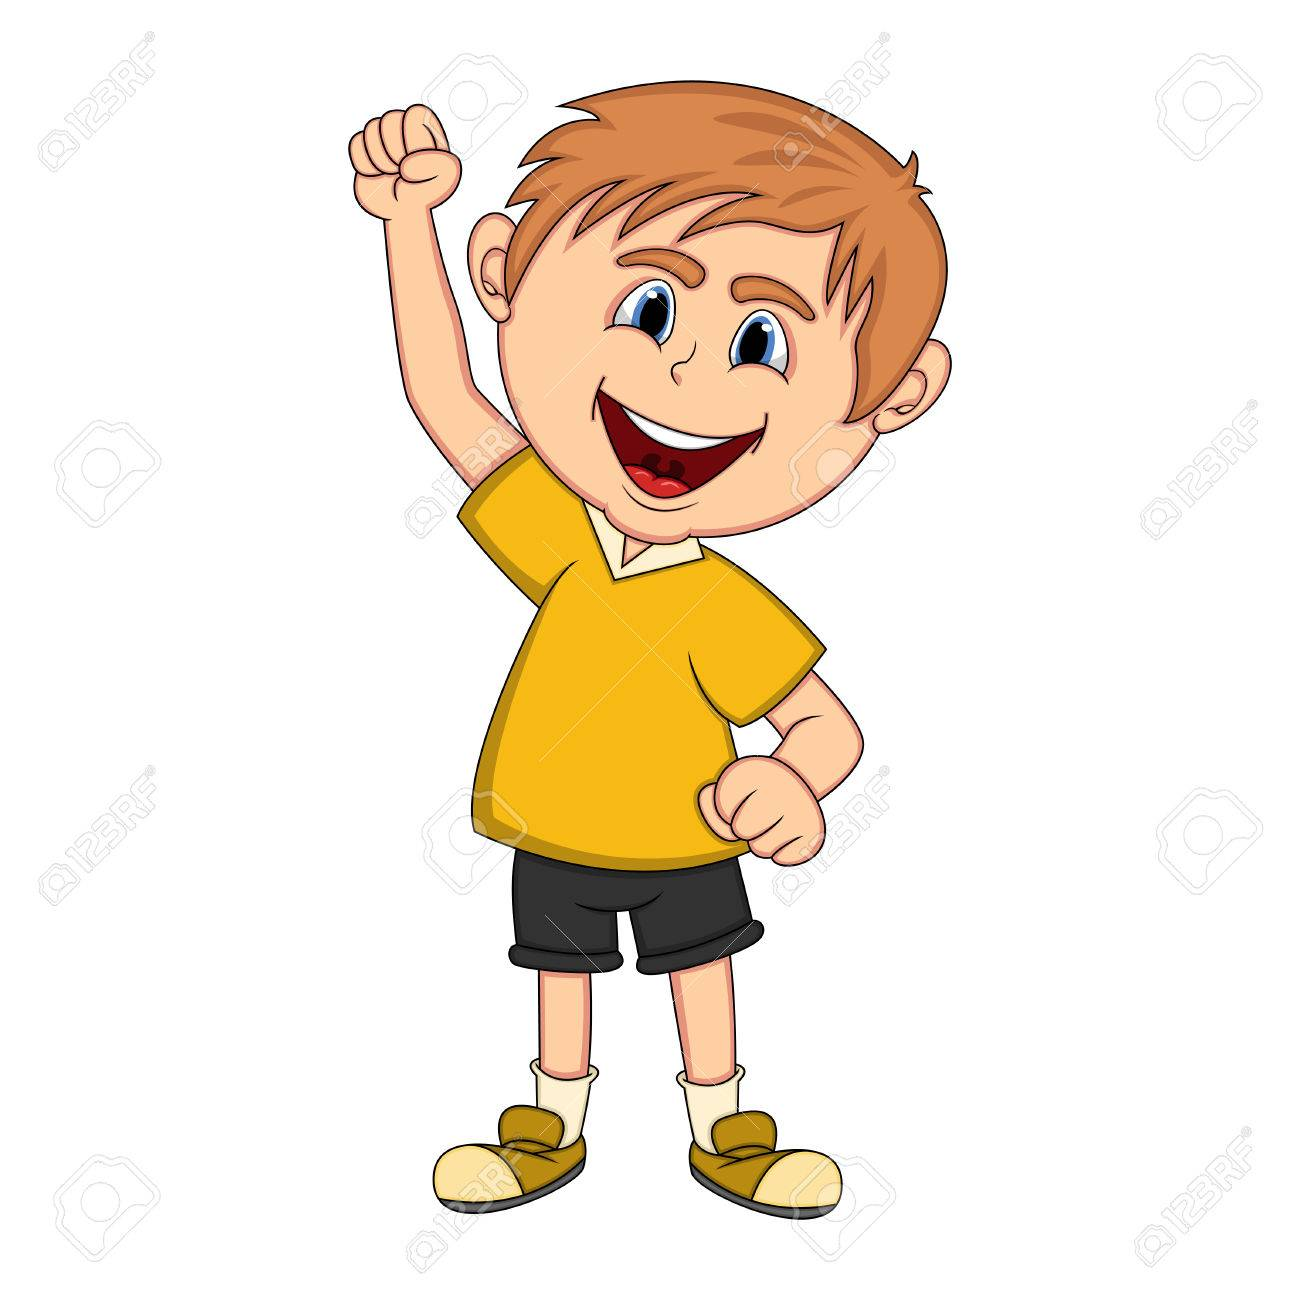 Boy raised his hand cartoon.